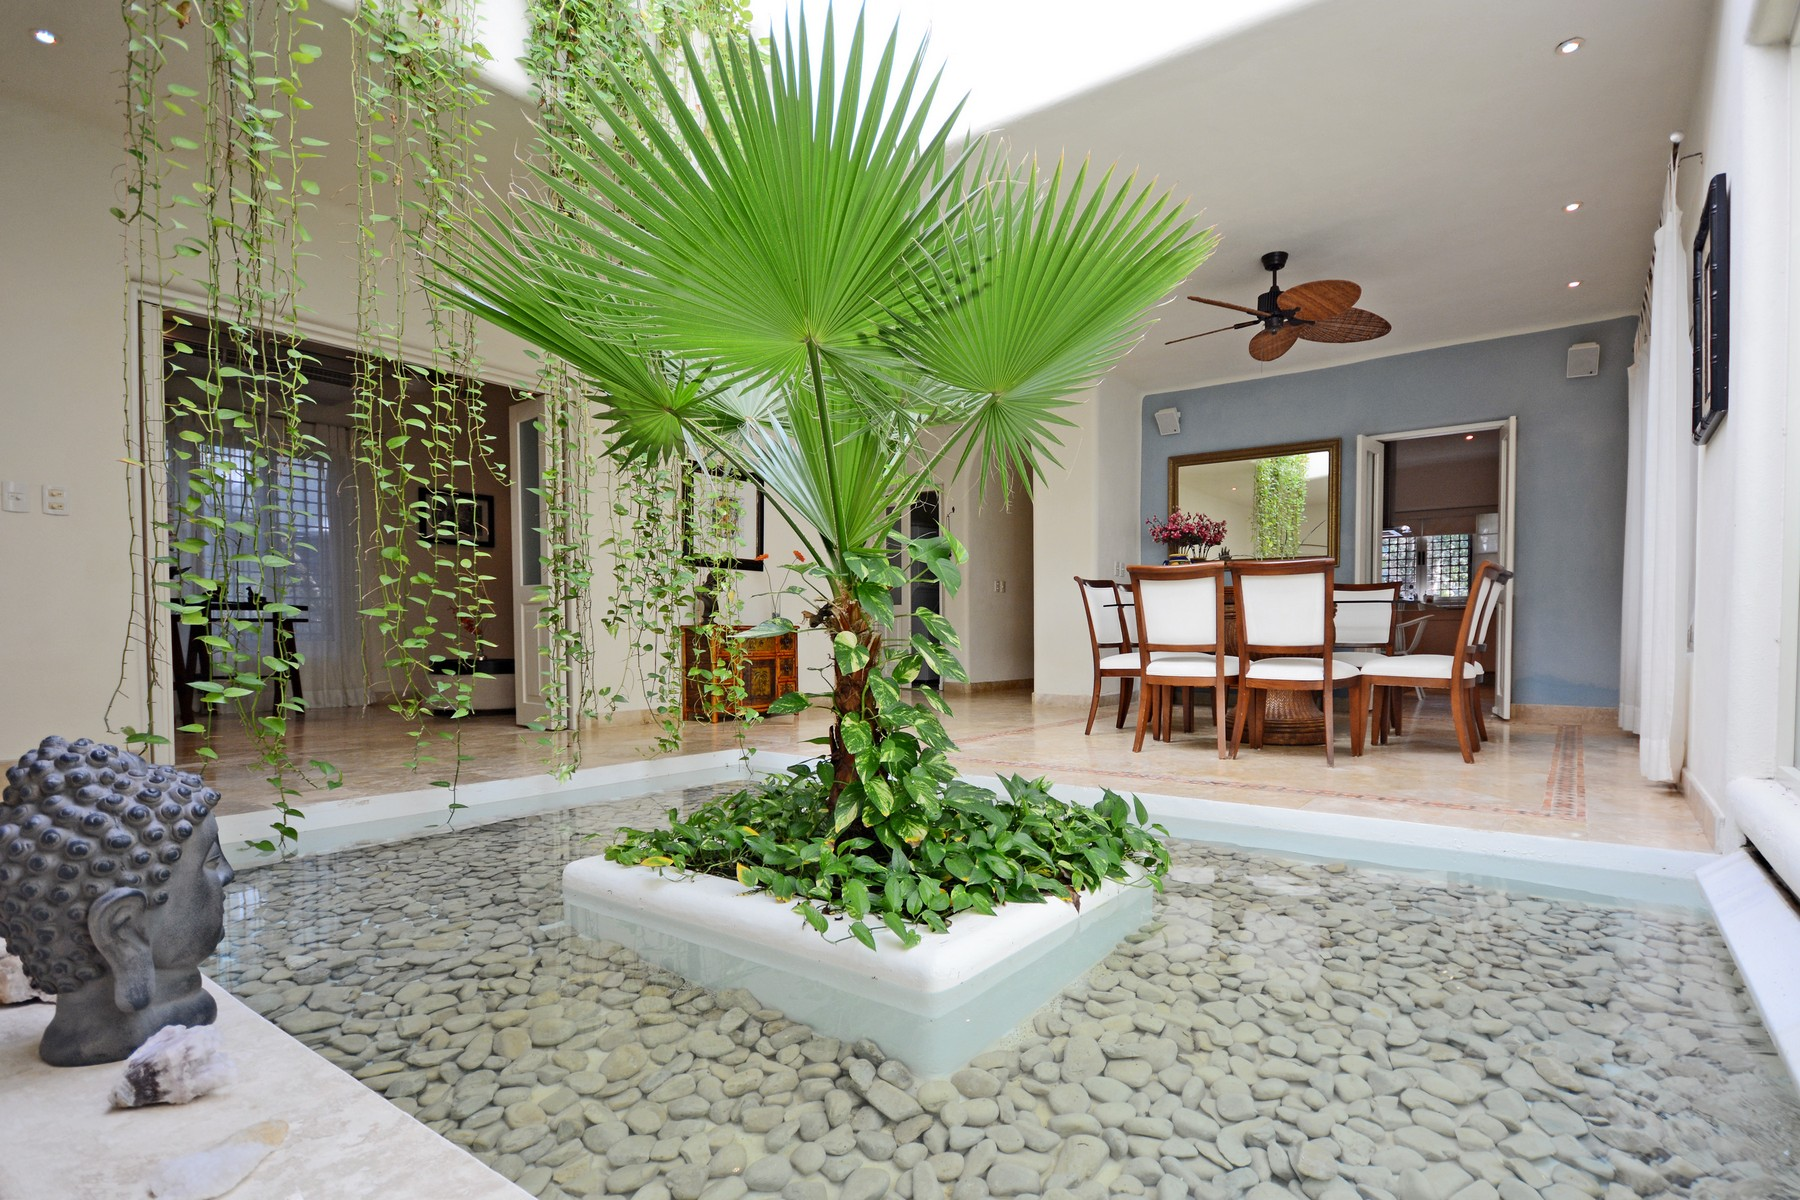 Additional photo for property listing at SERENITY HOME Retorno Copán Condominio Club Real Mza 22, C 73 Playa Del Carmen, Quintana Roo 777 México